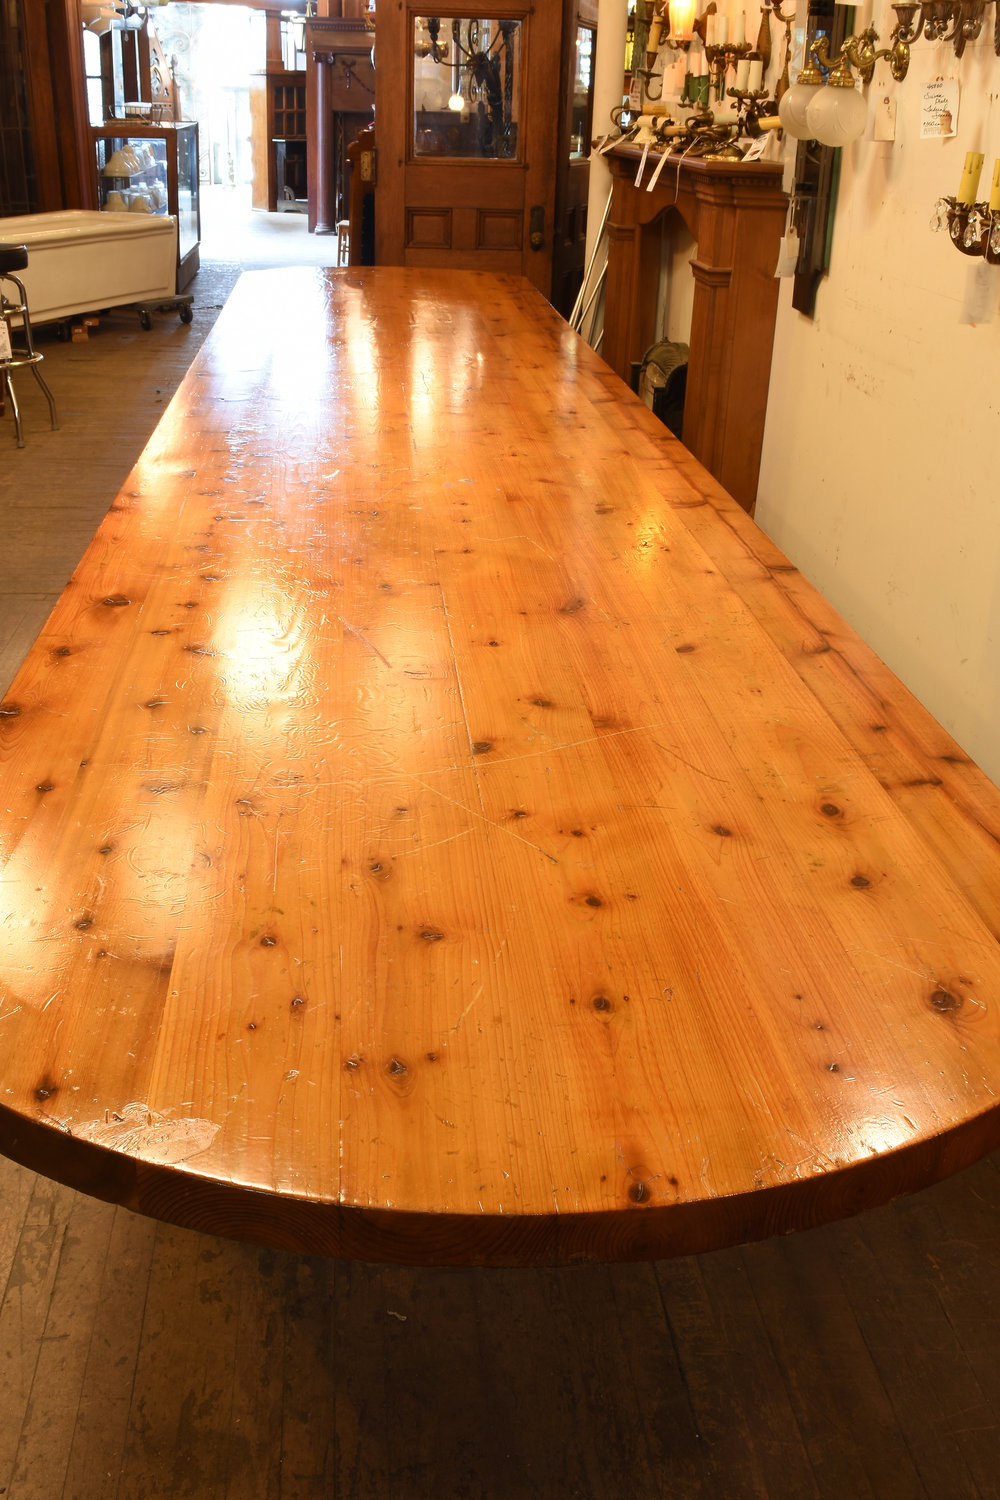 47027 sixteen feet 5 inche pine lodge table 1.jpg